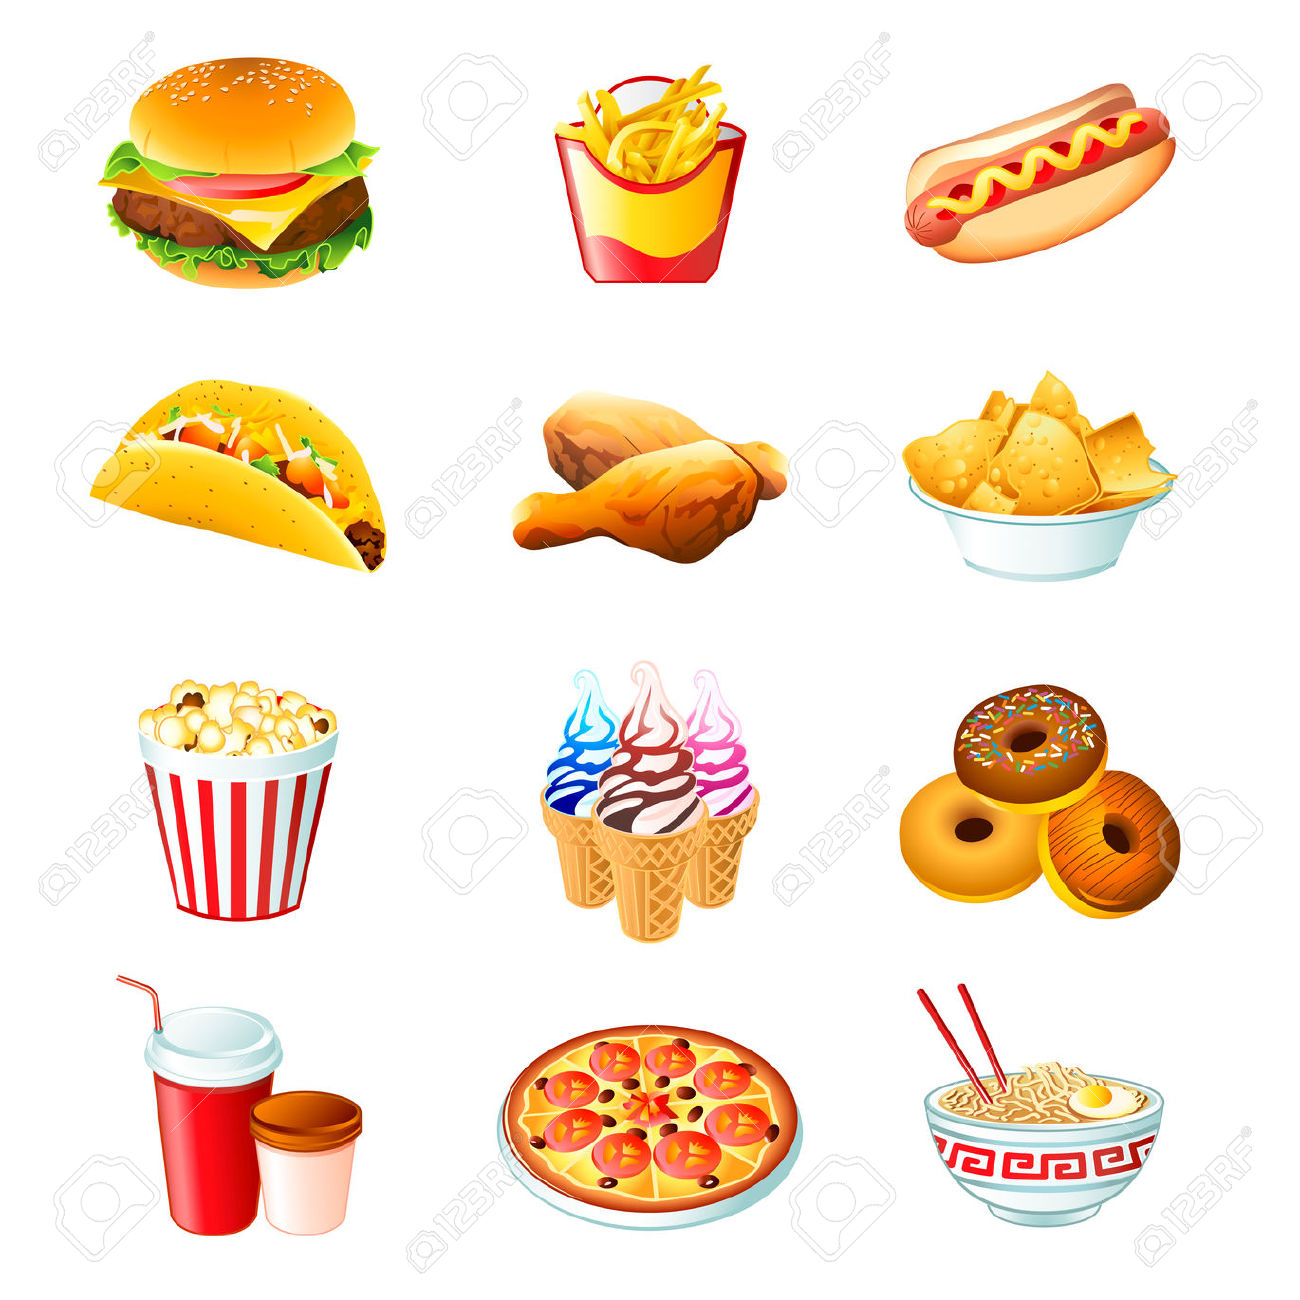 Ungesundes essen clipart clip art black and white Colorful Icons Mit Fast-Food-essen Isoliert Lizenzfrei Nutzbare ... clip art black and white